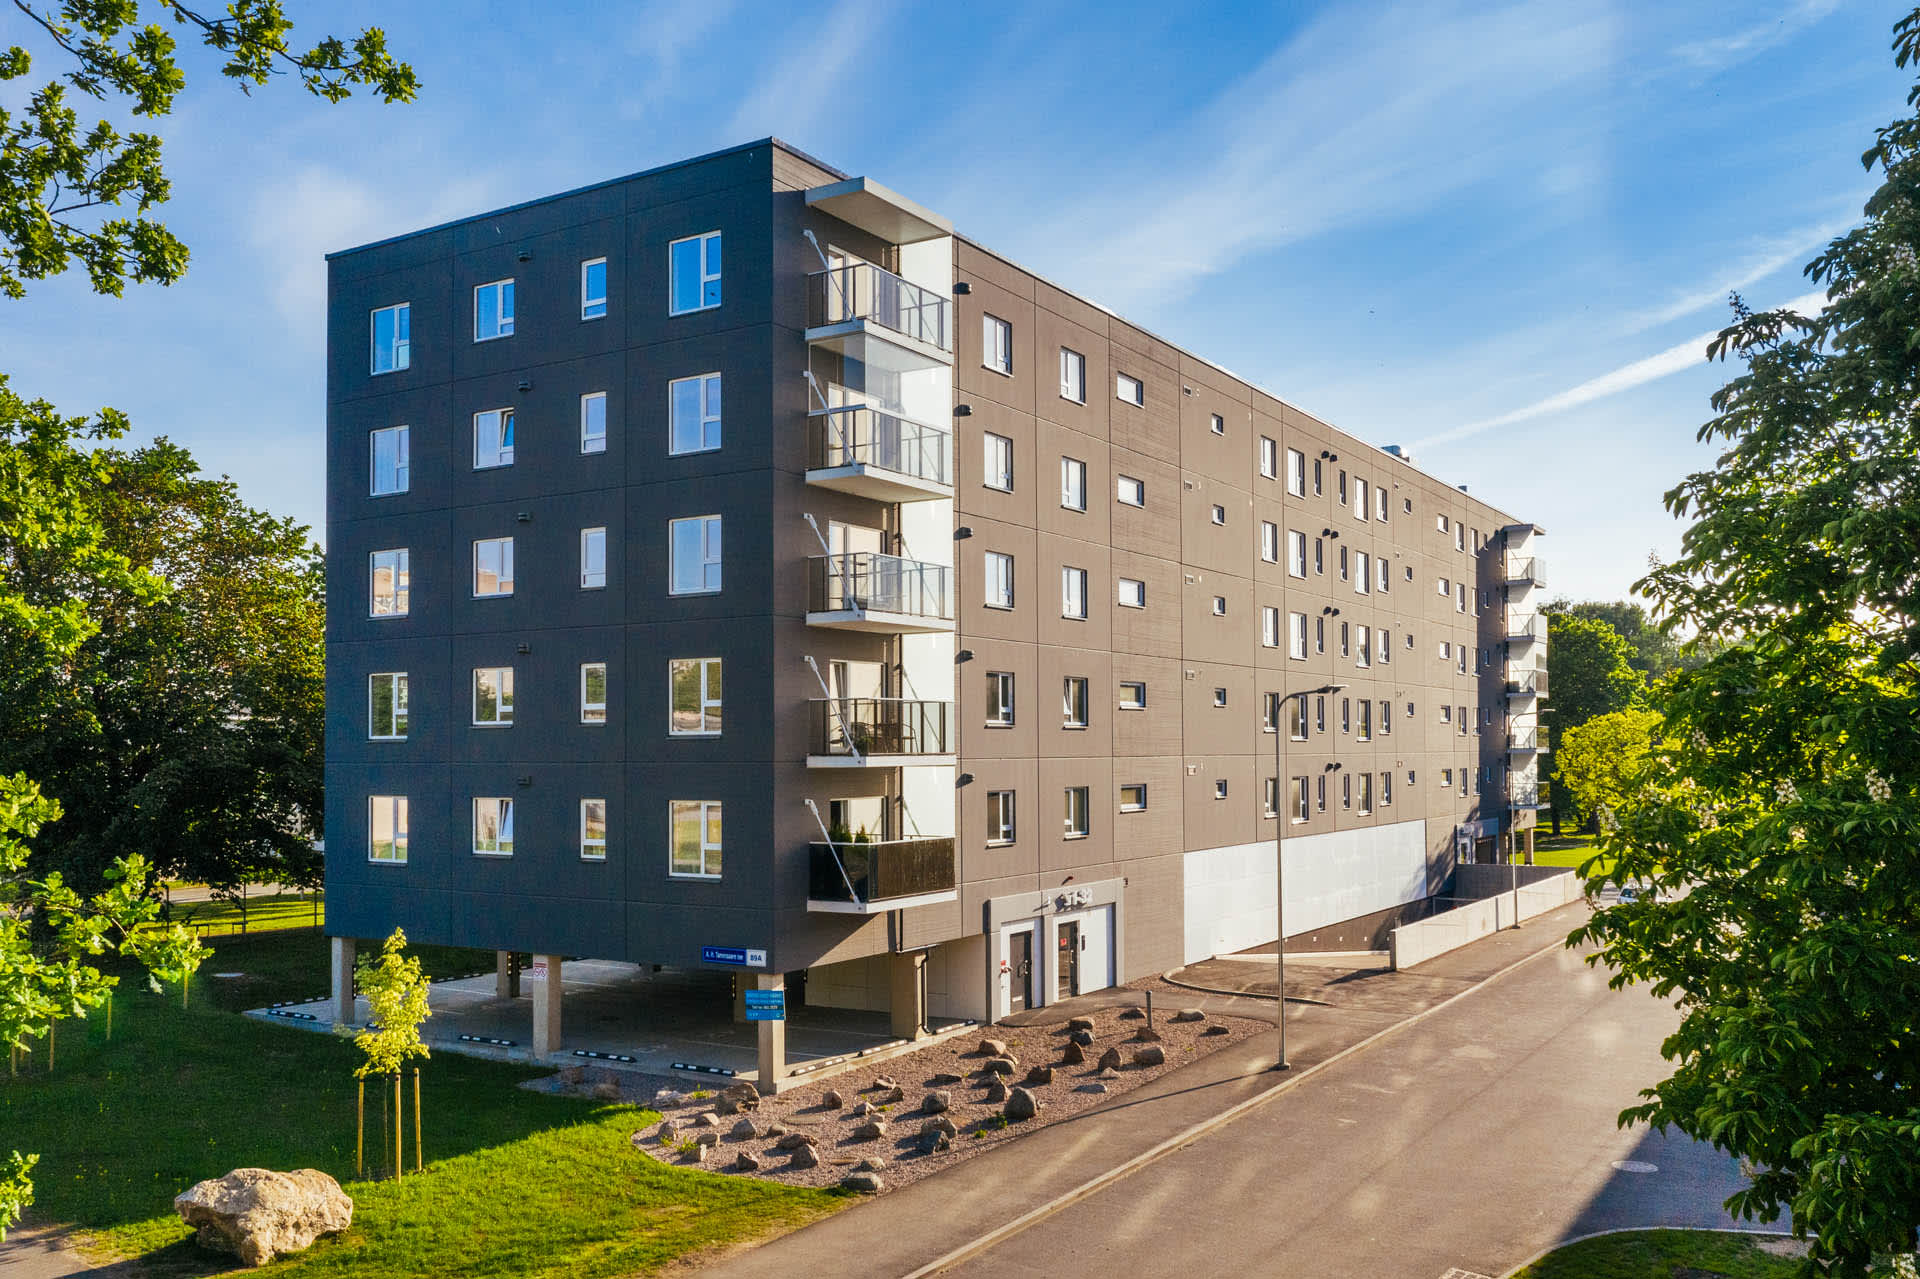 Apartment building at A.H. Tammsaare tee 89a